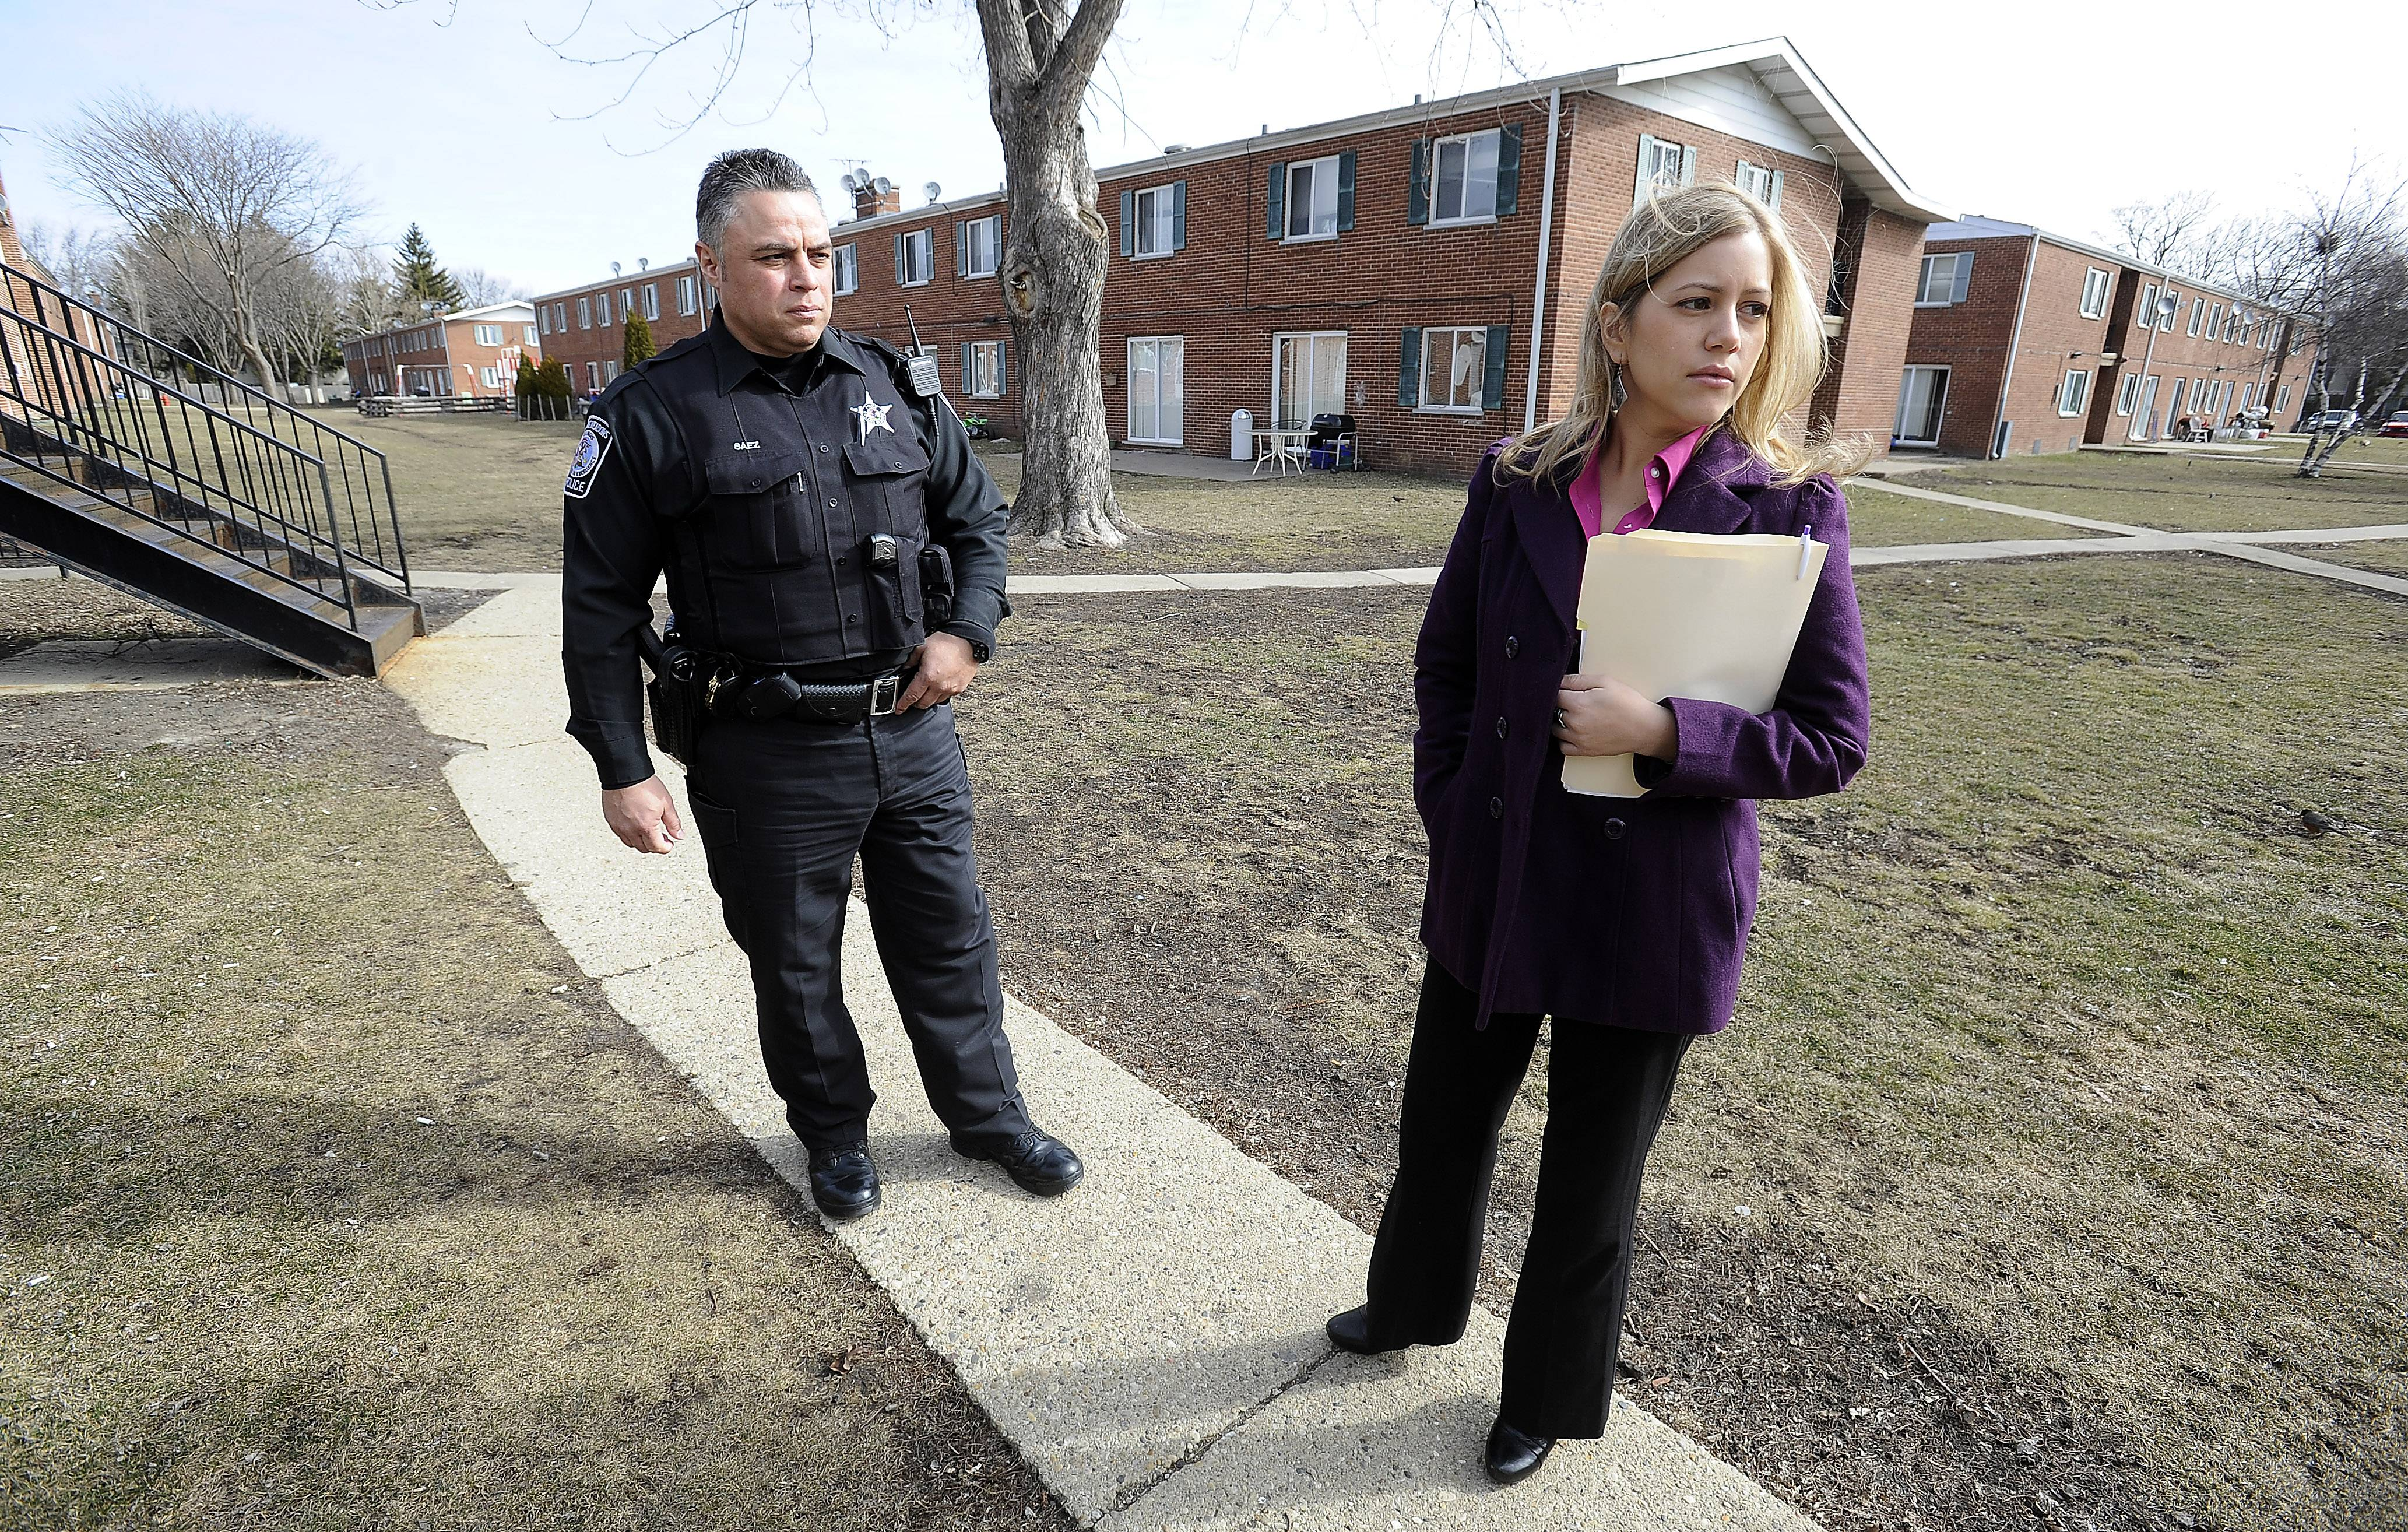 Rolling Meadows police Officer Carlos Saez and police social worker Natalia Mercado walk the grounds at the East Park apartments, providing residents with different services.